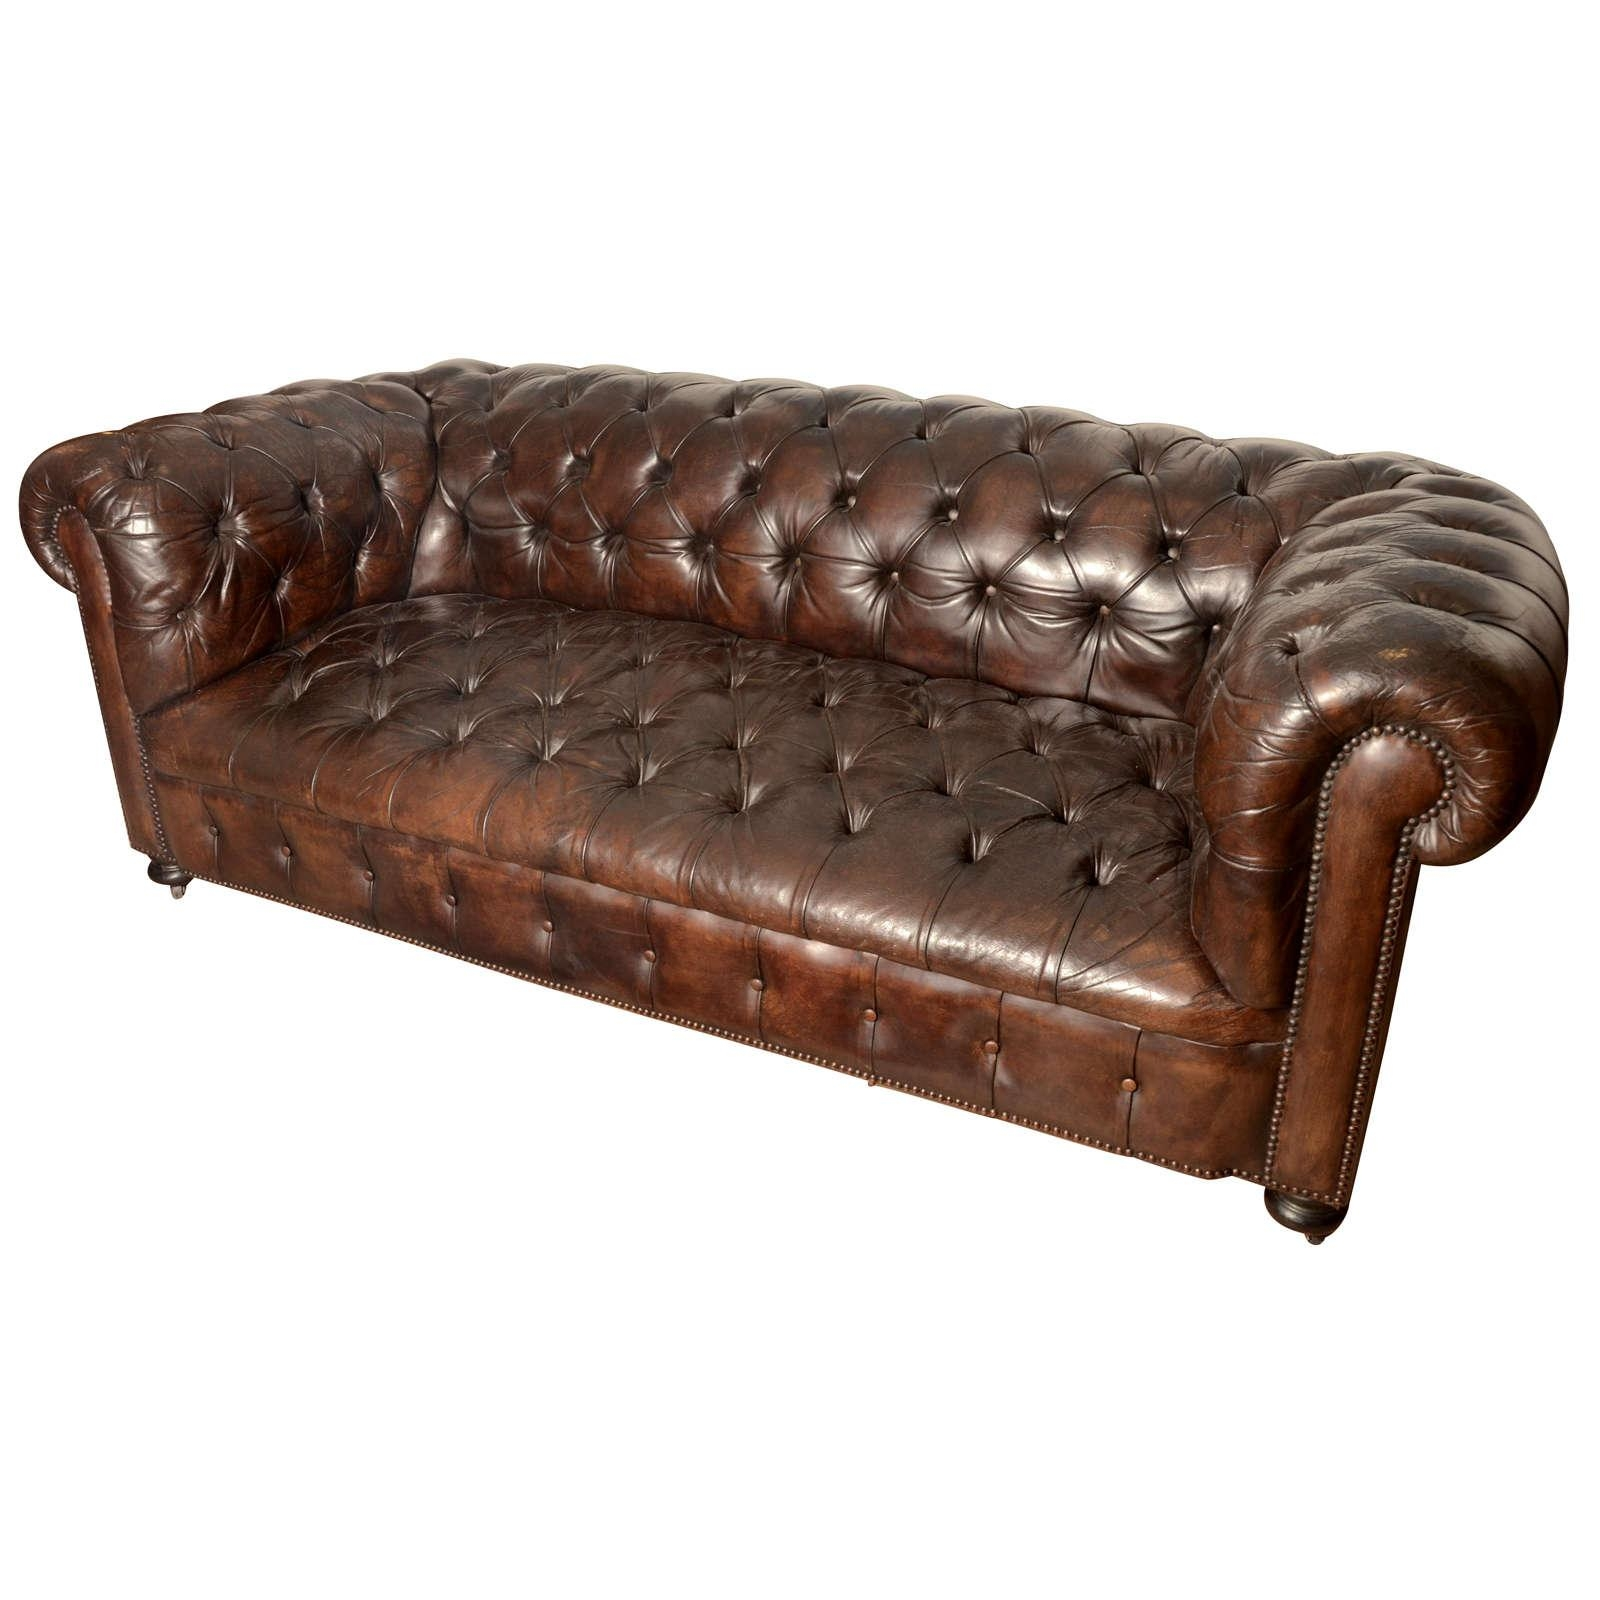 20 Ideas Of Craigslist Chesterfield Sofas Sofa Ideas